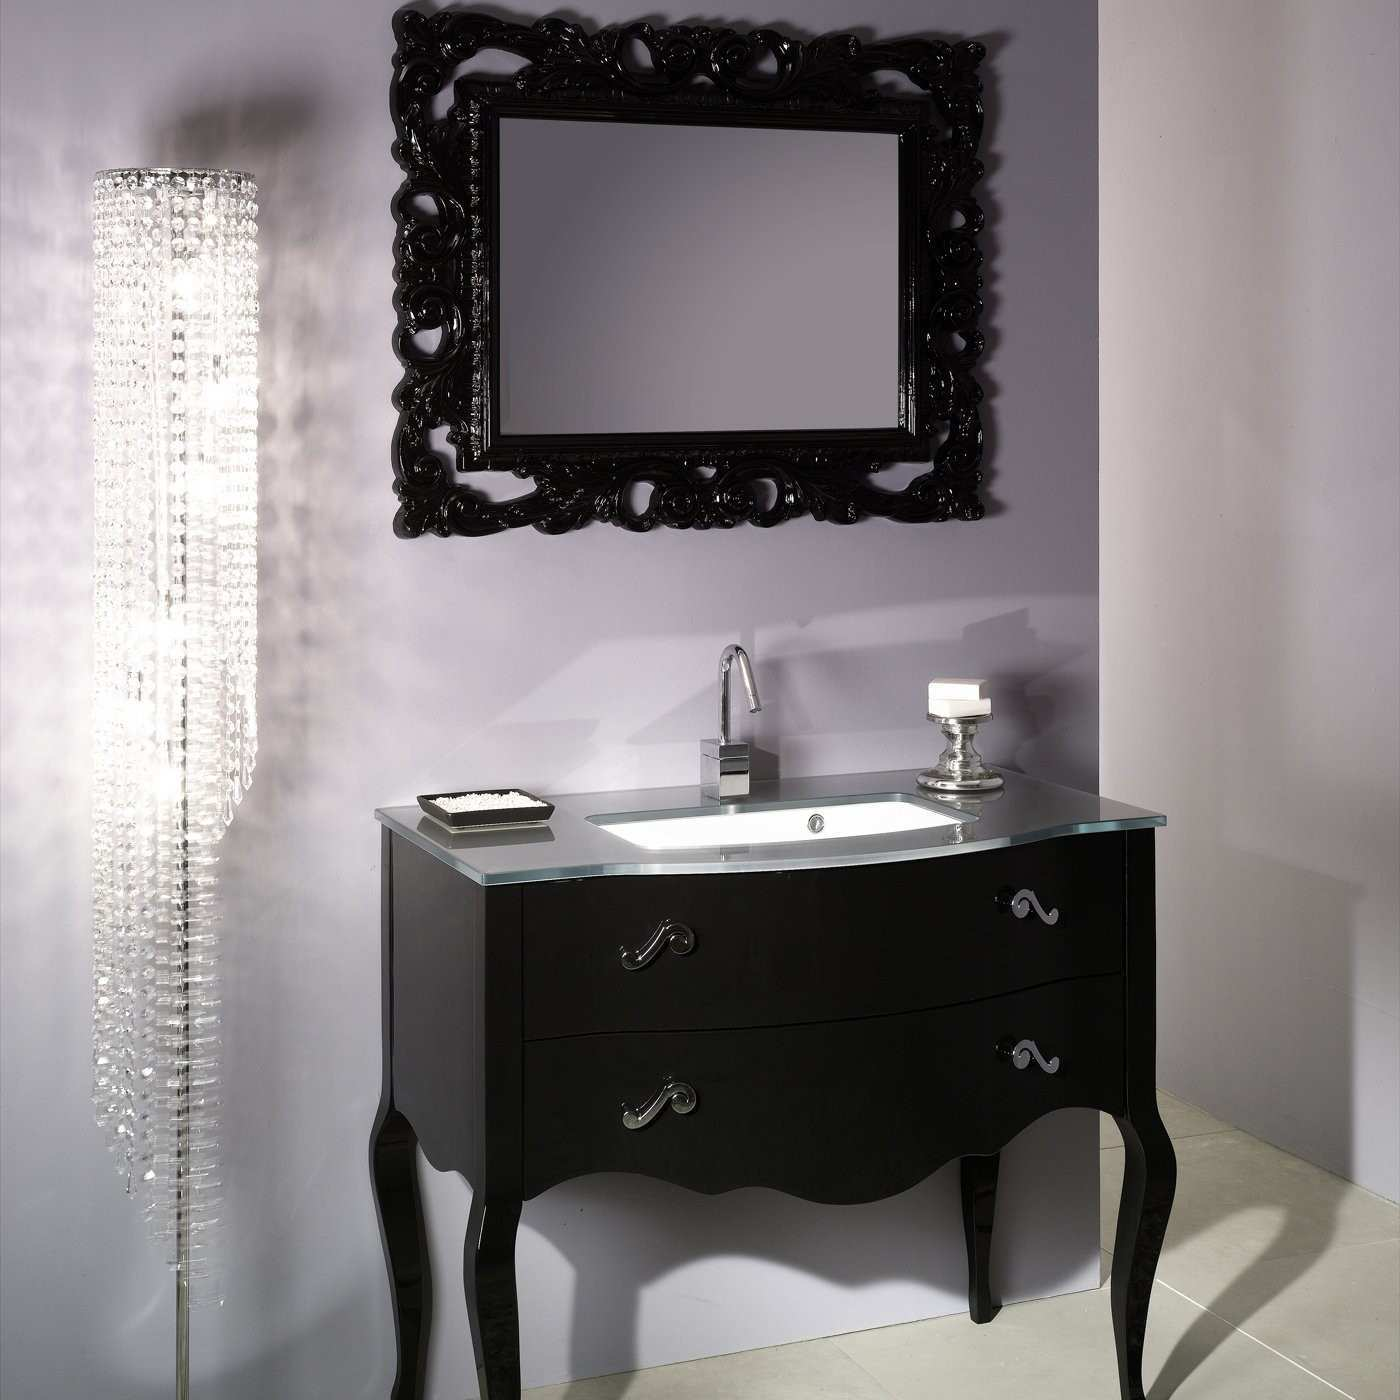 Wall Mounted Bathroom Mirrors Unique 28 X 20 In Wall Mounted